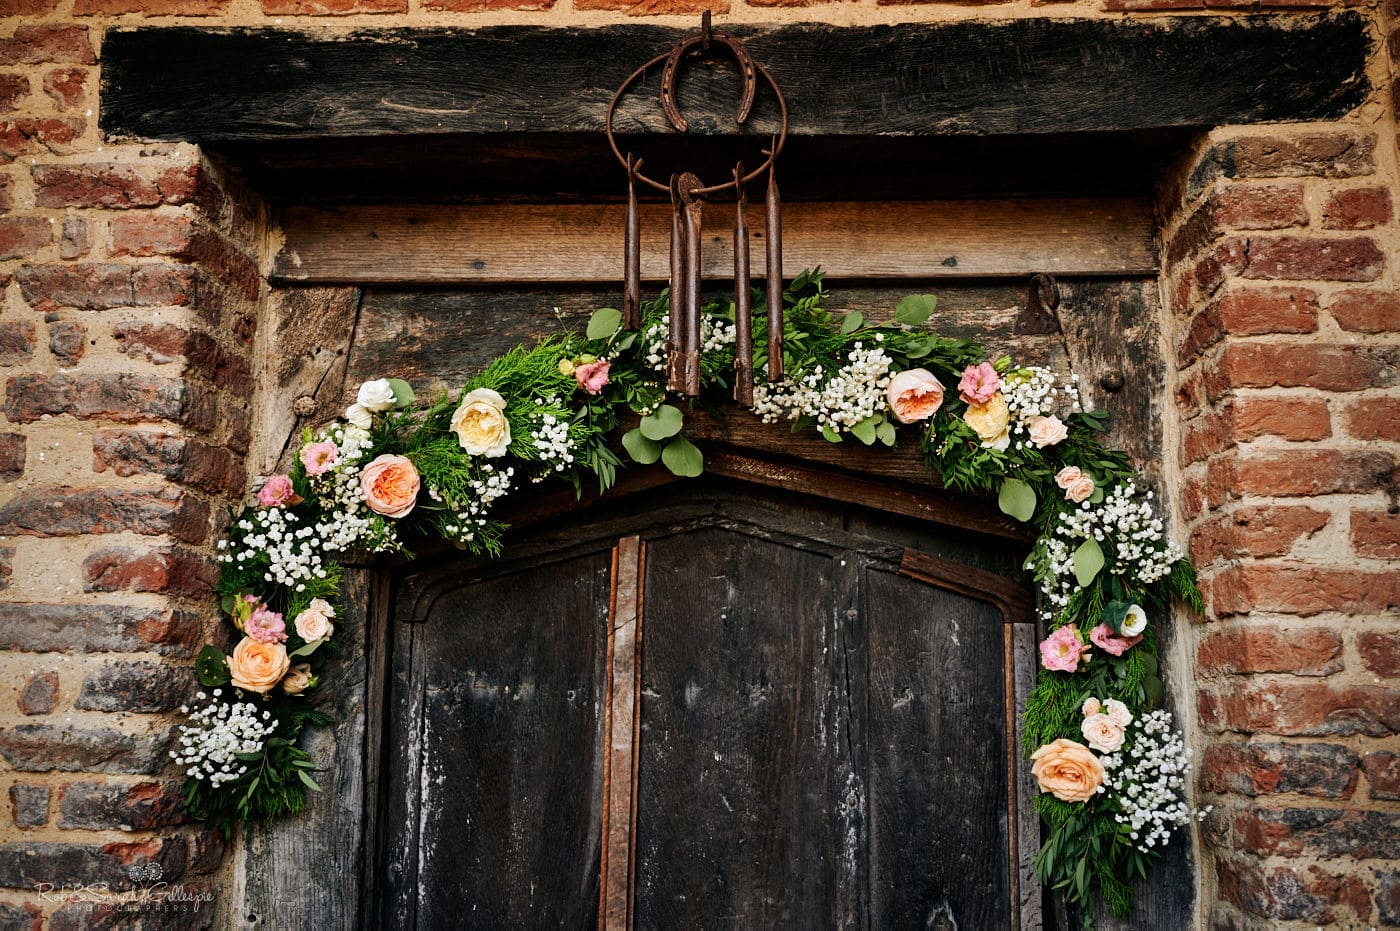 Flowers decorte old doorway at Gorcott Hall